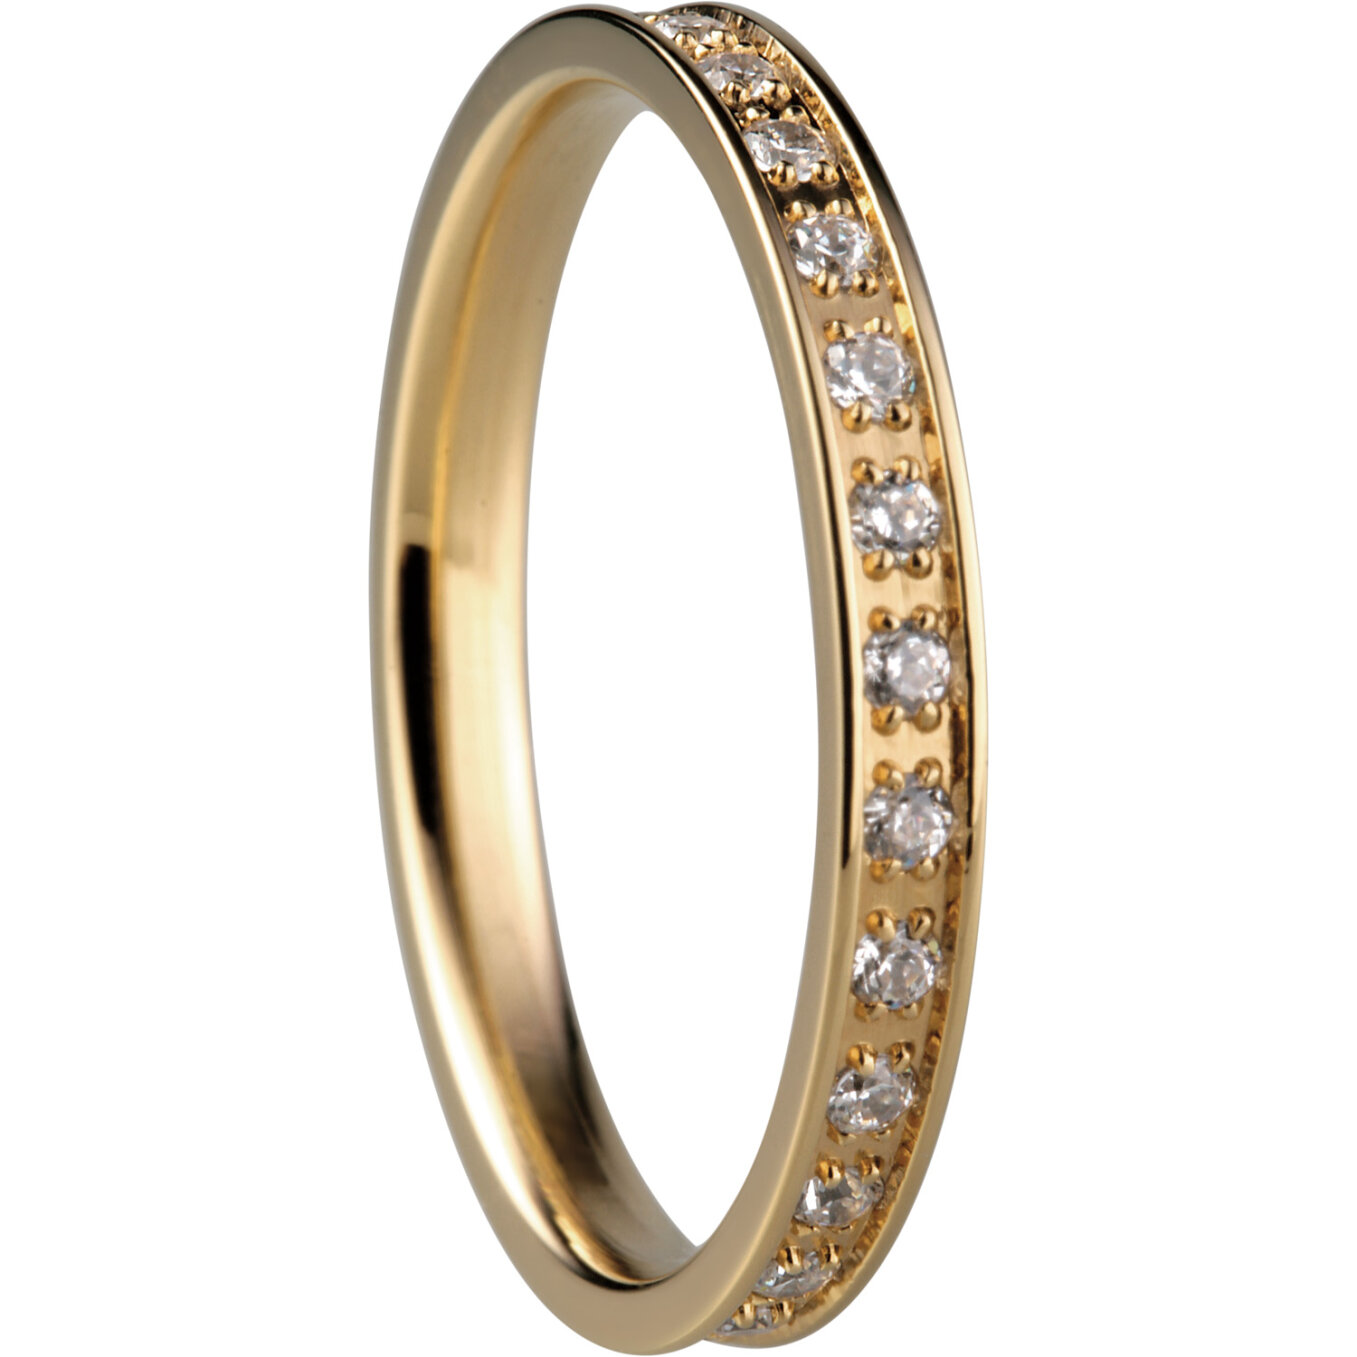 Bering Innenring 556-27-111 -Faith- gold